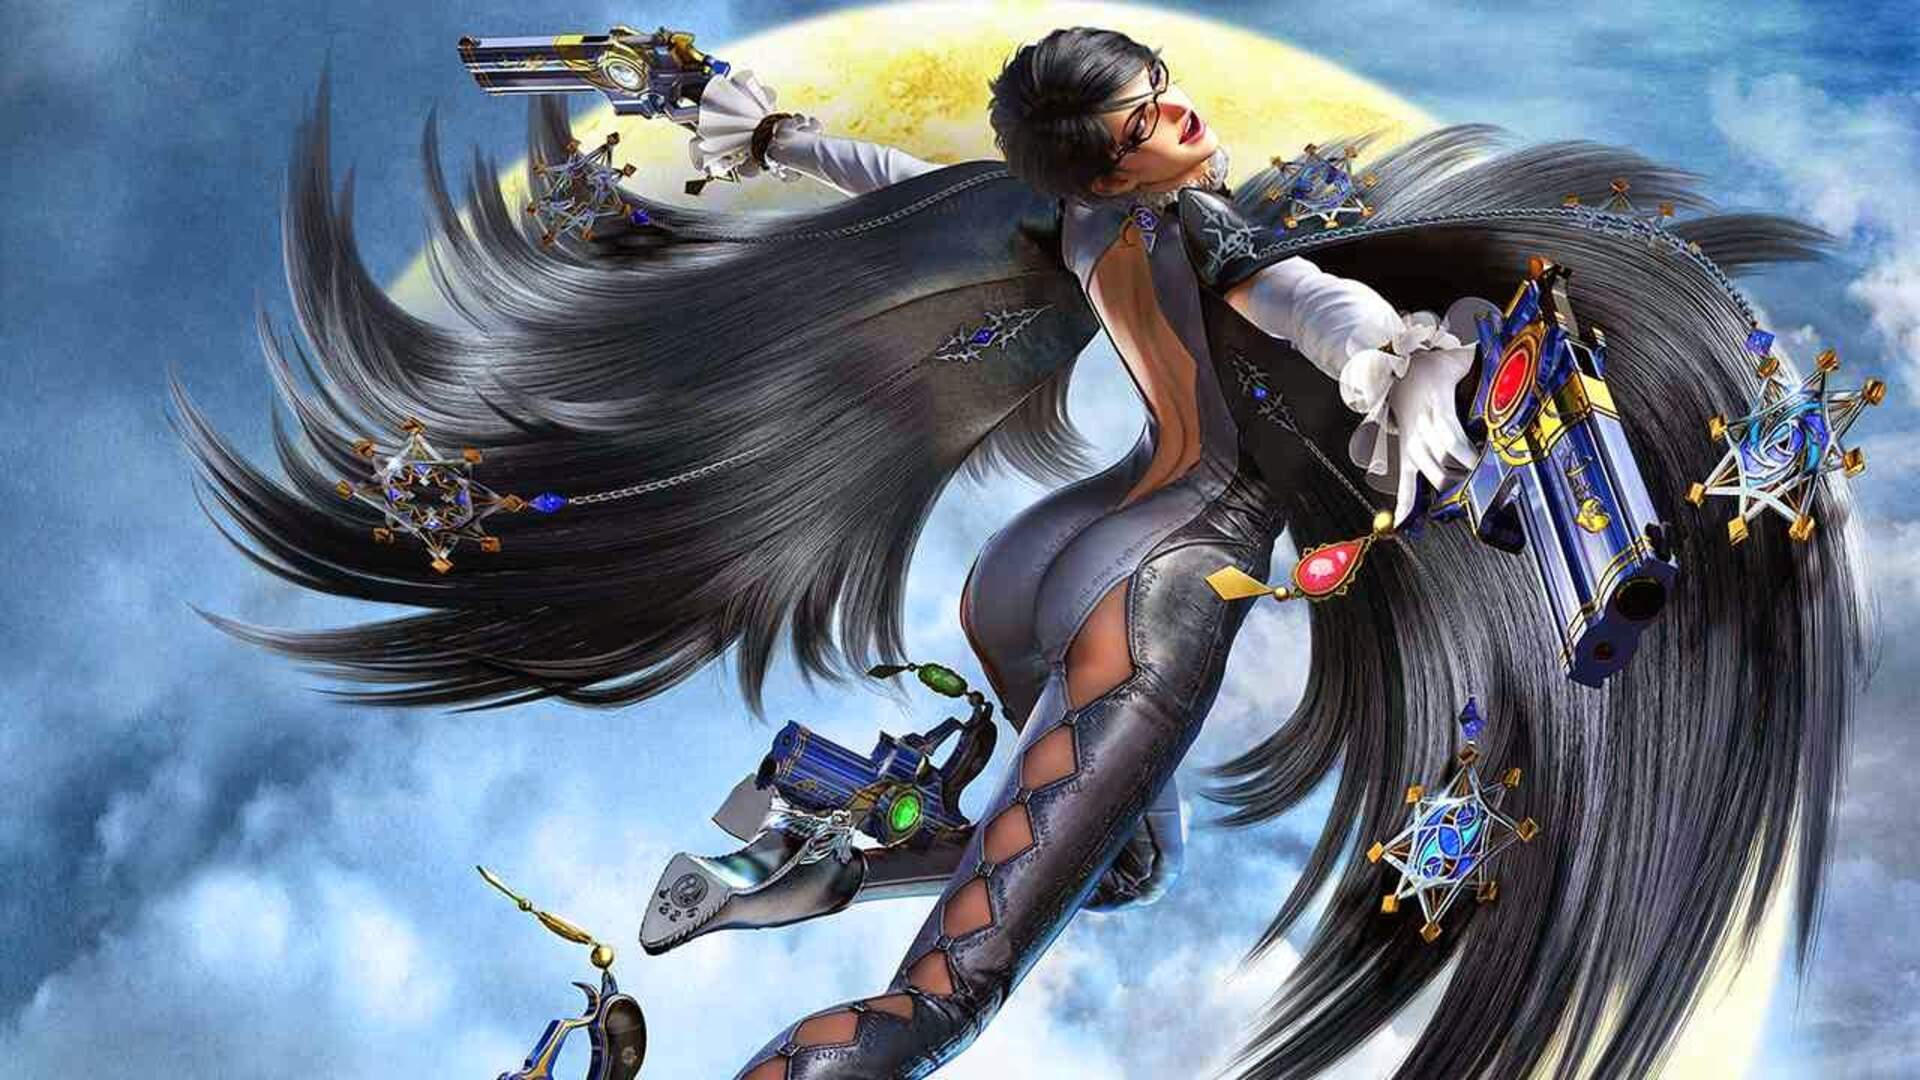 PlatinumGames Developers Share Their Ambition for the New Year [Correction]